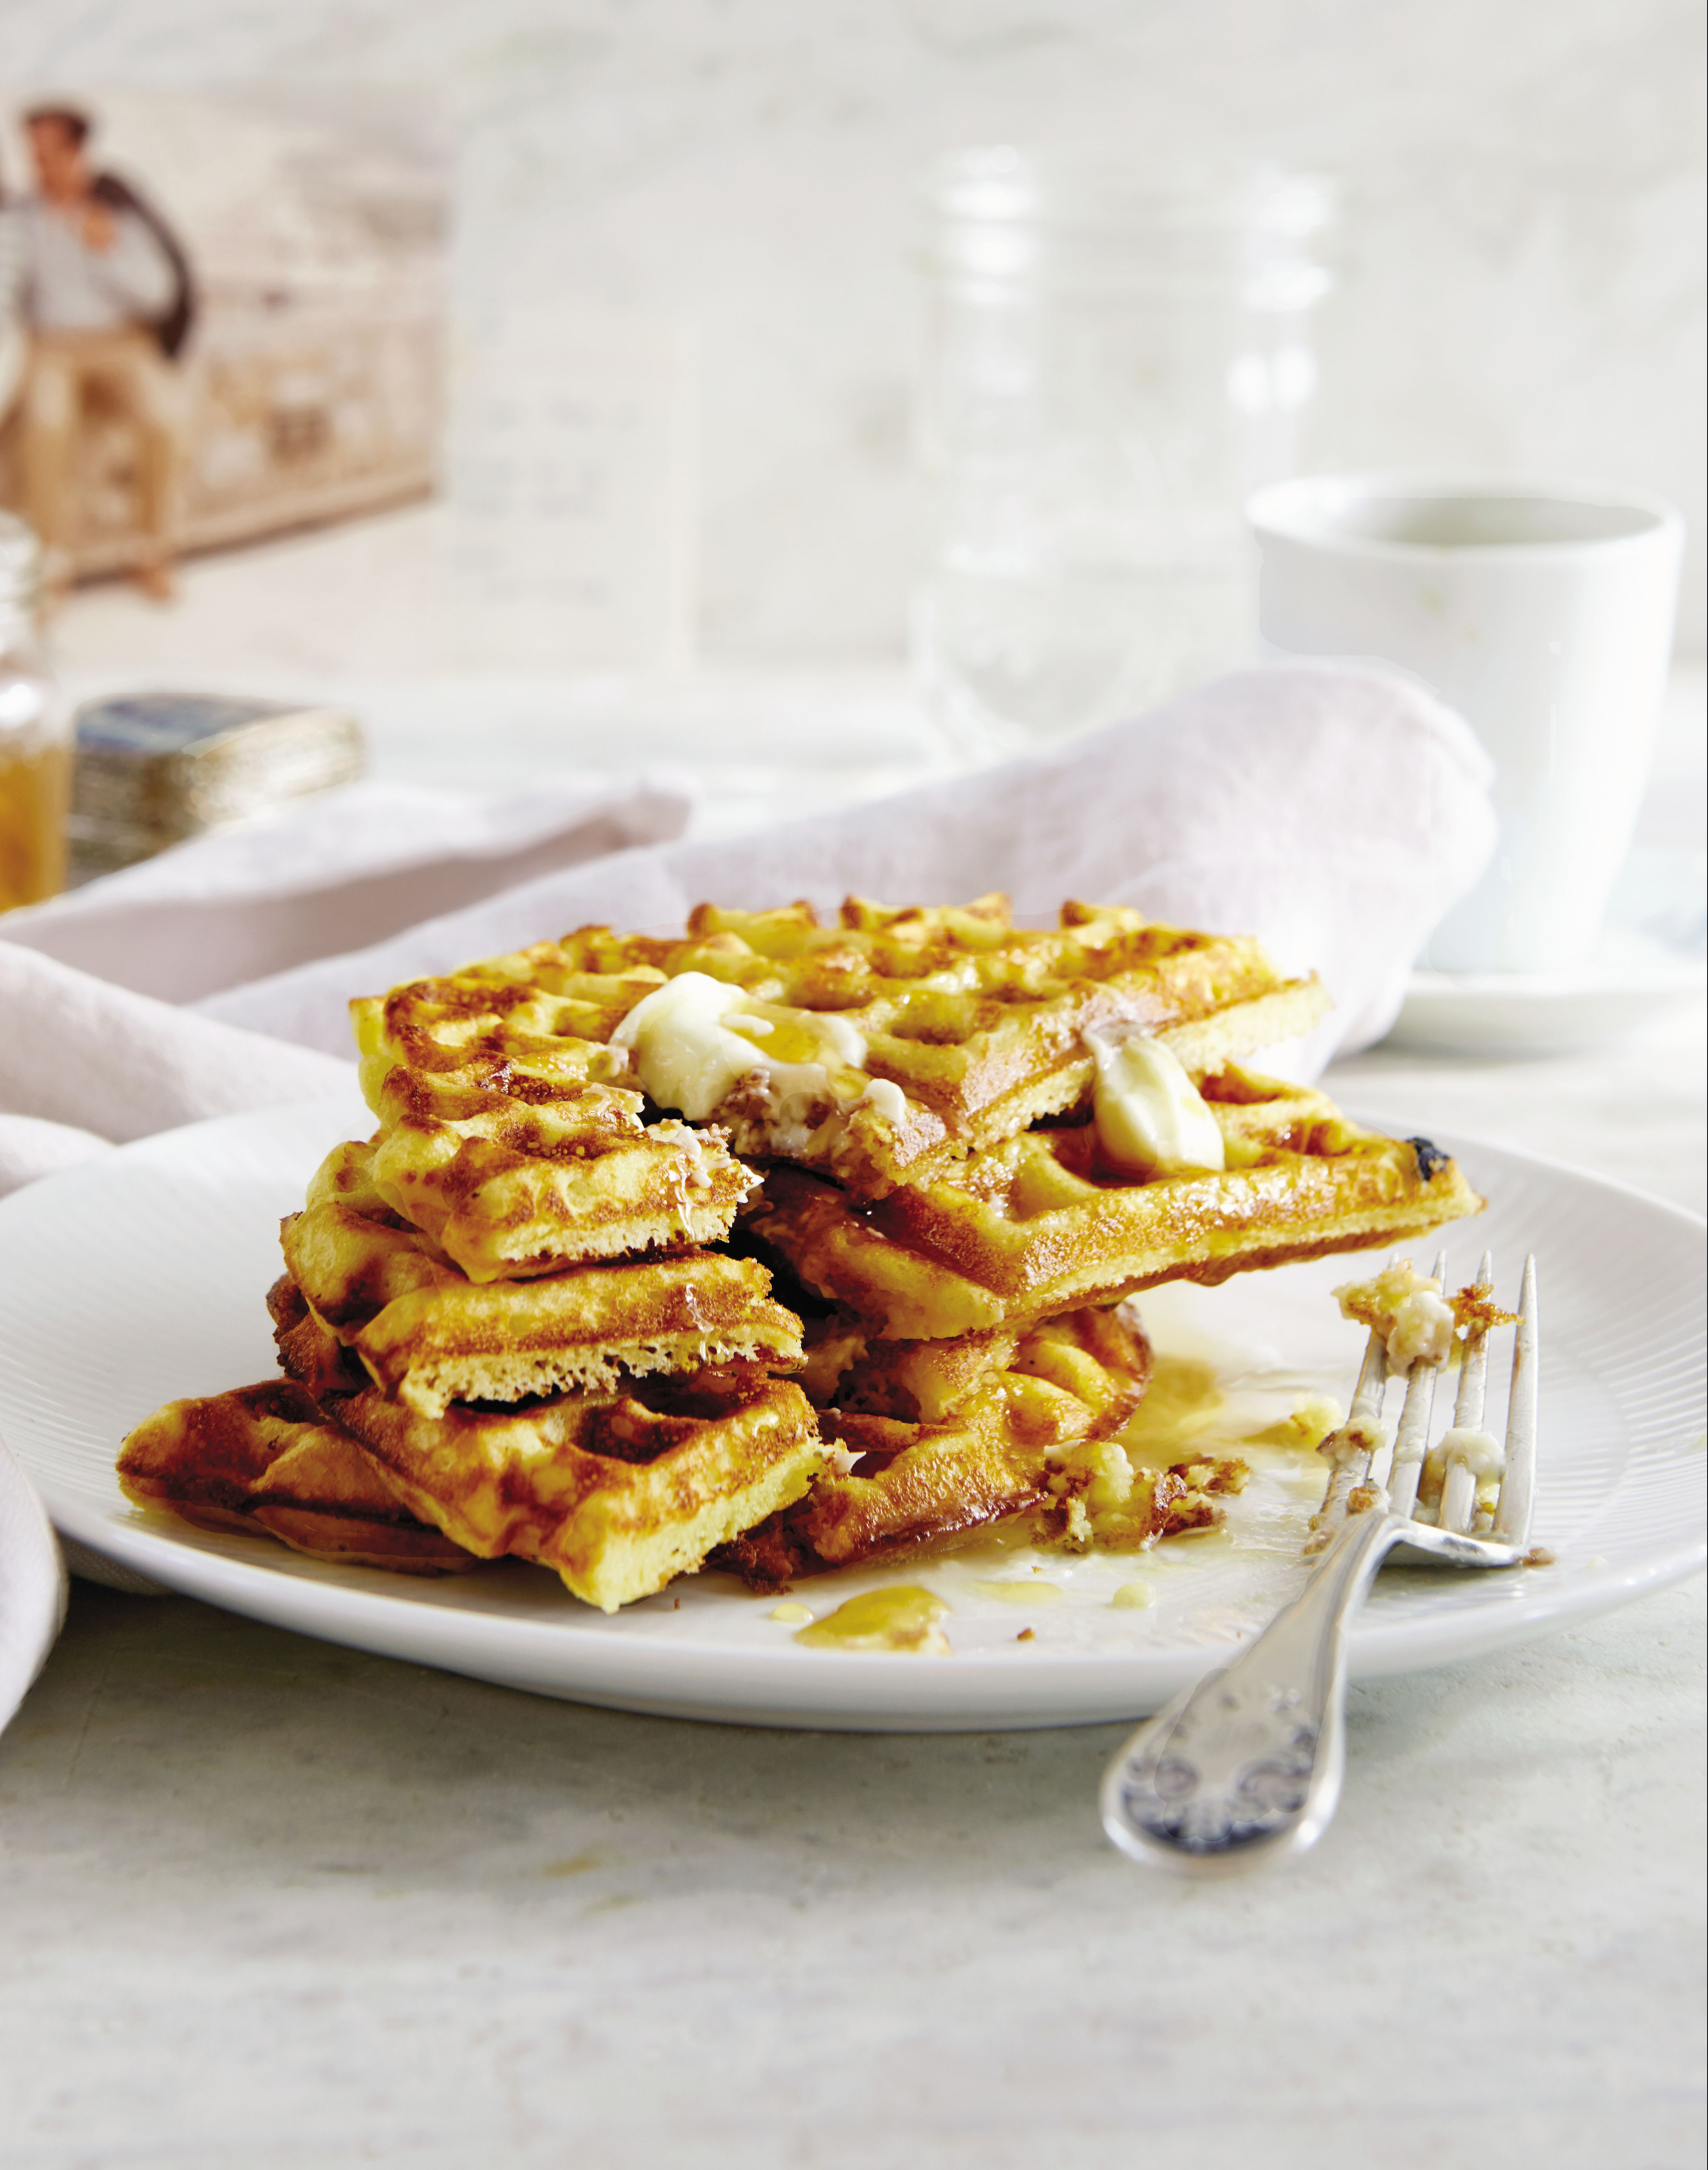 Warrior Waffles from Daphne Oz's 'The Happy Cook'